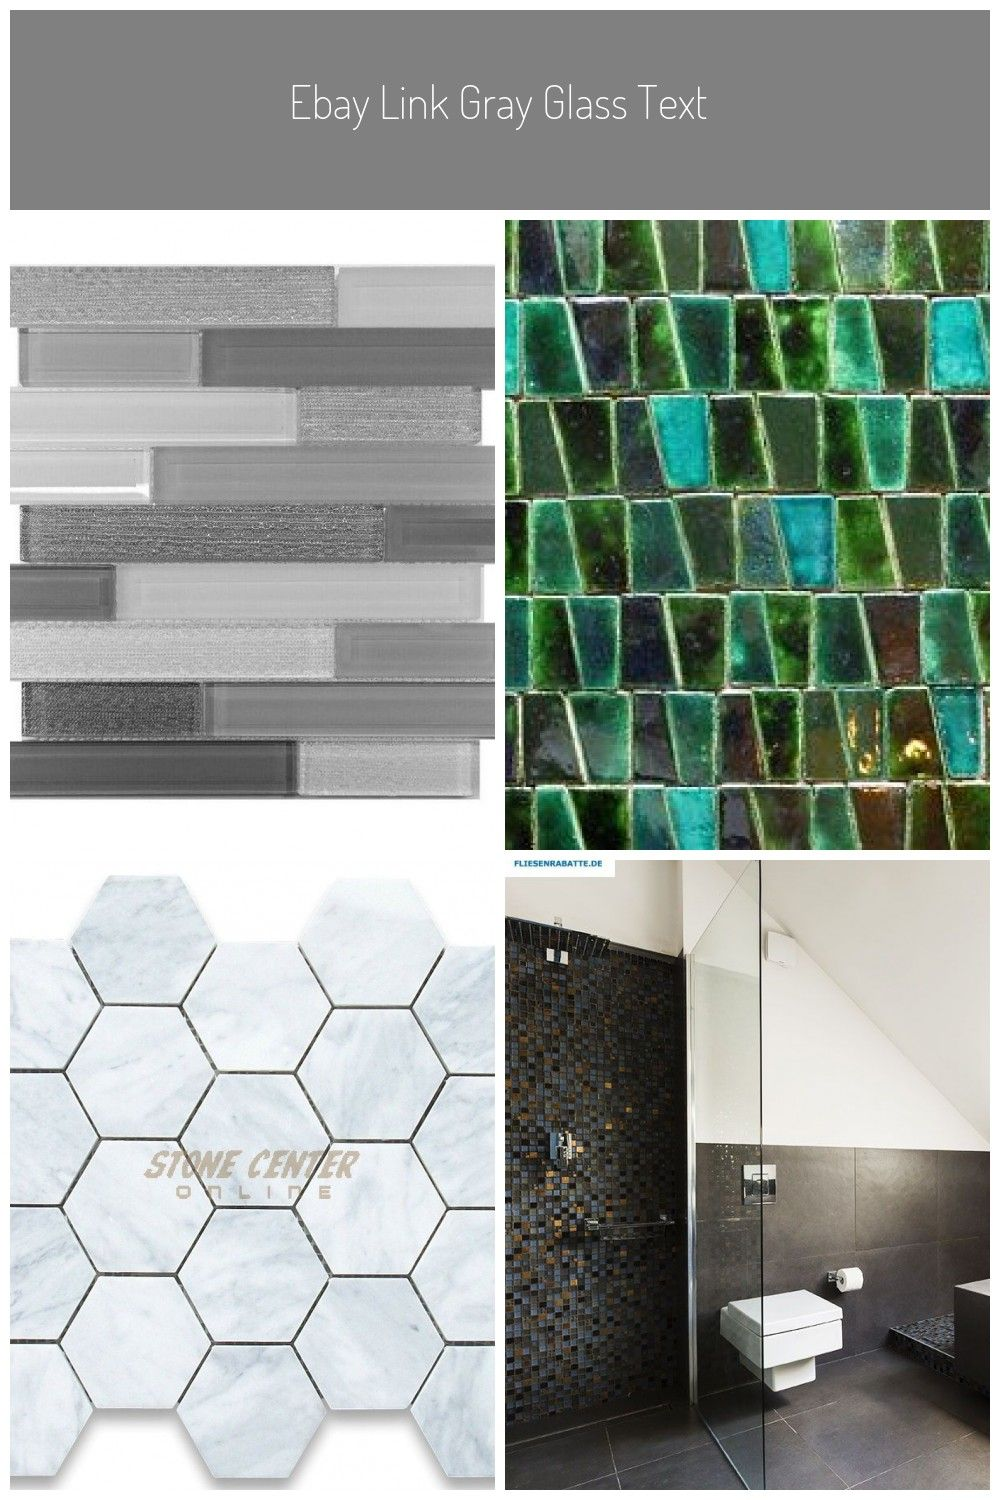 Ebay Link Gray Glass Texture Interlock Mosaic Tile Shower Kitchen Ebay Link Grau Glas Textur Interlock Mosaik Fli Mosaic Shower Tile Shower Tile Mosaic Tiles